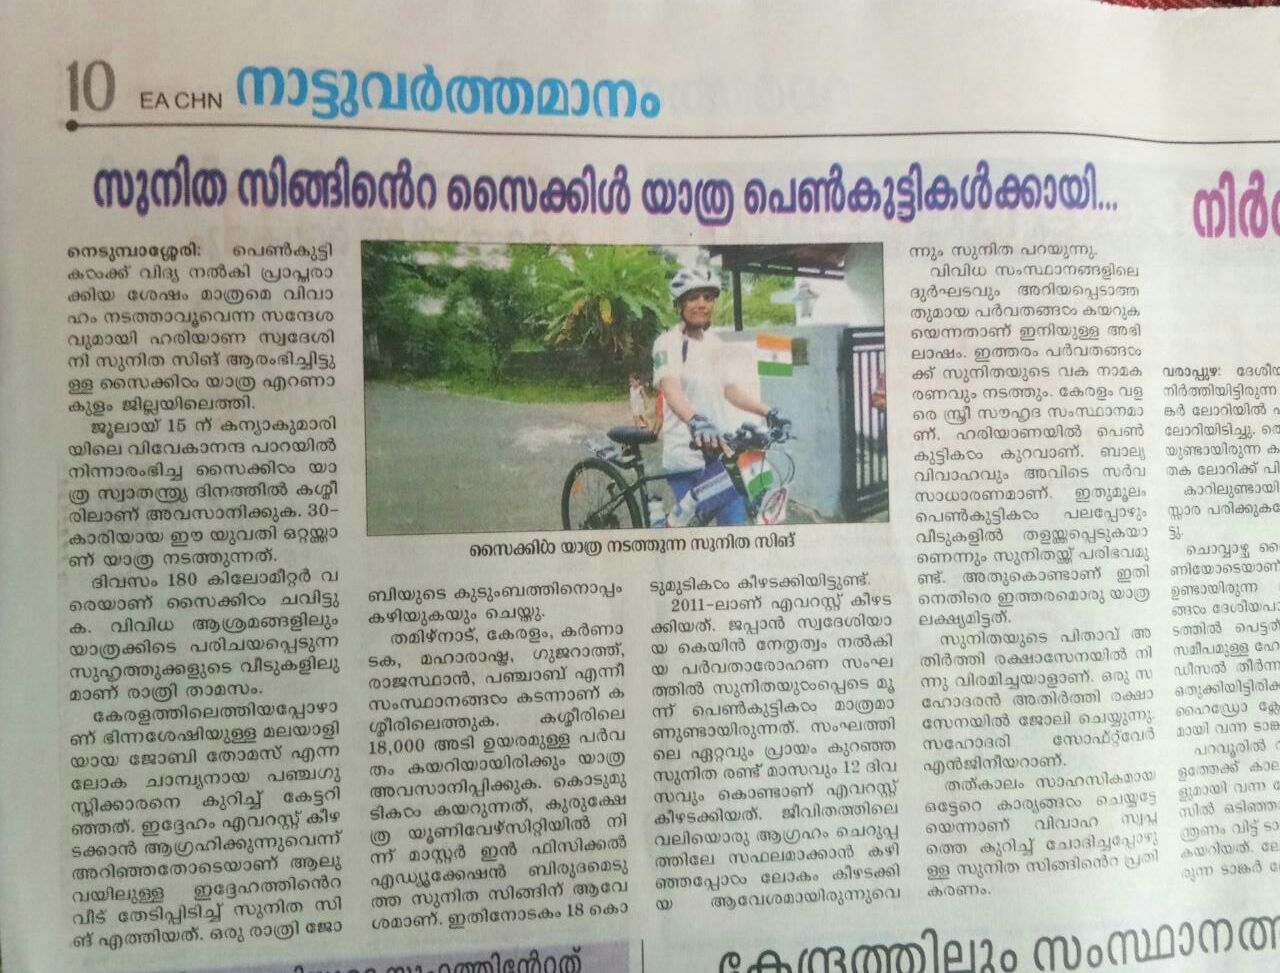 Local news paper coverage for Sunita of her solo Cycling Experdition